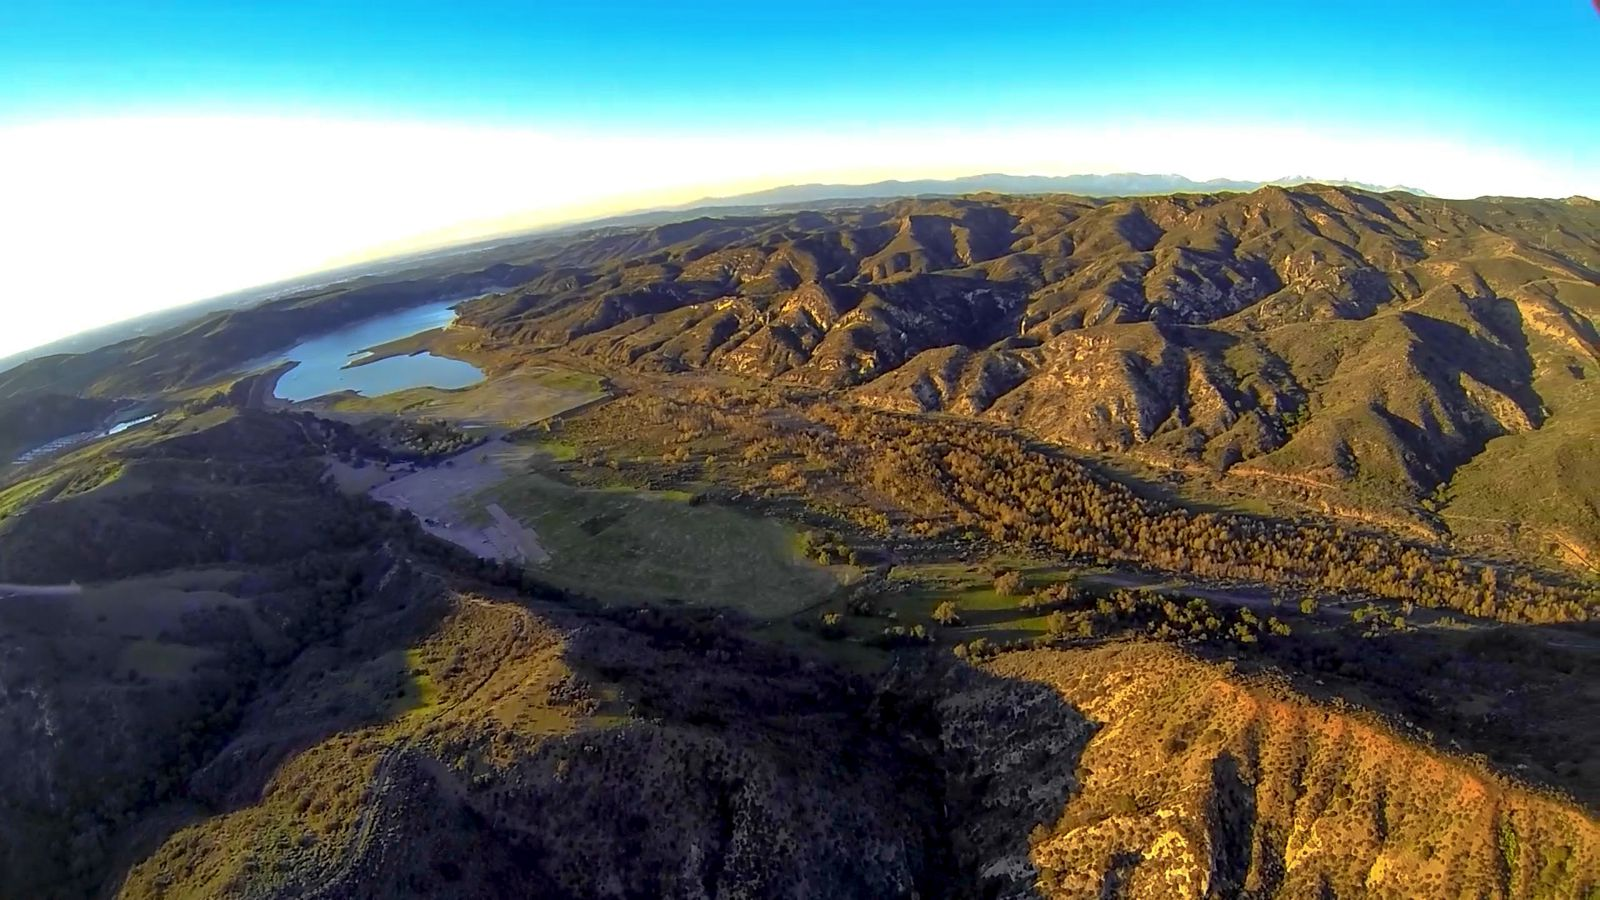 12 Of The Best Hiking Routes You Have To Experience In California (3)